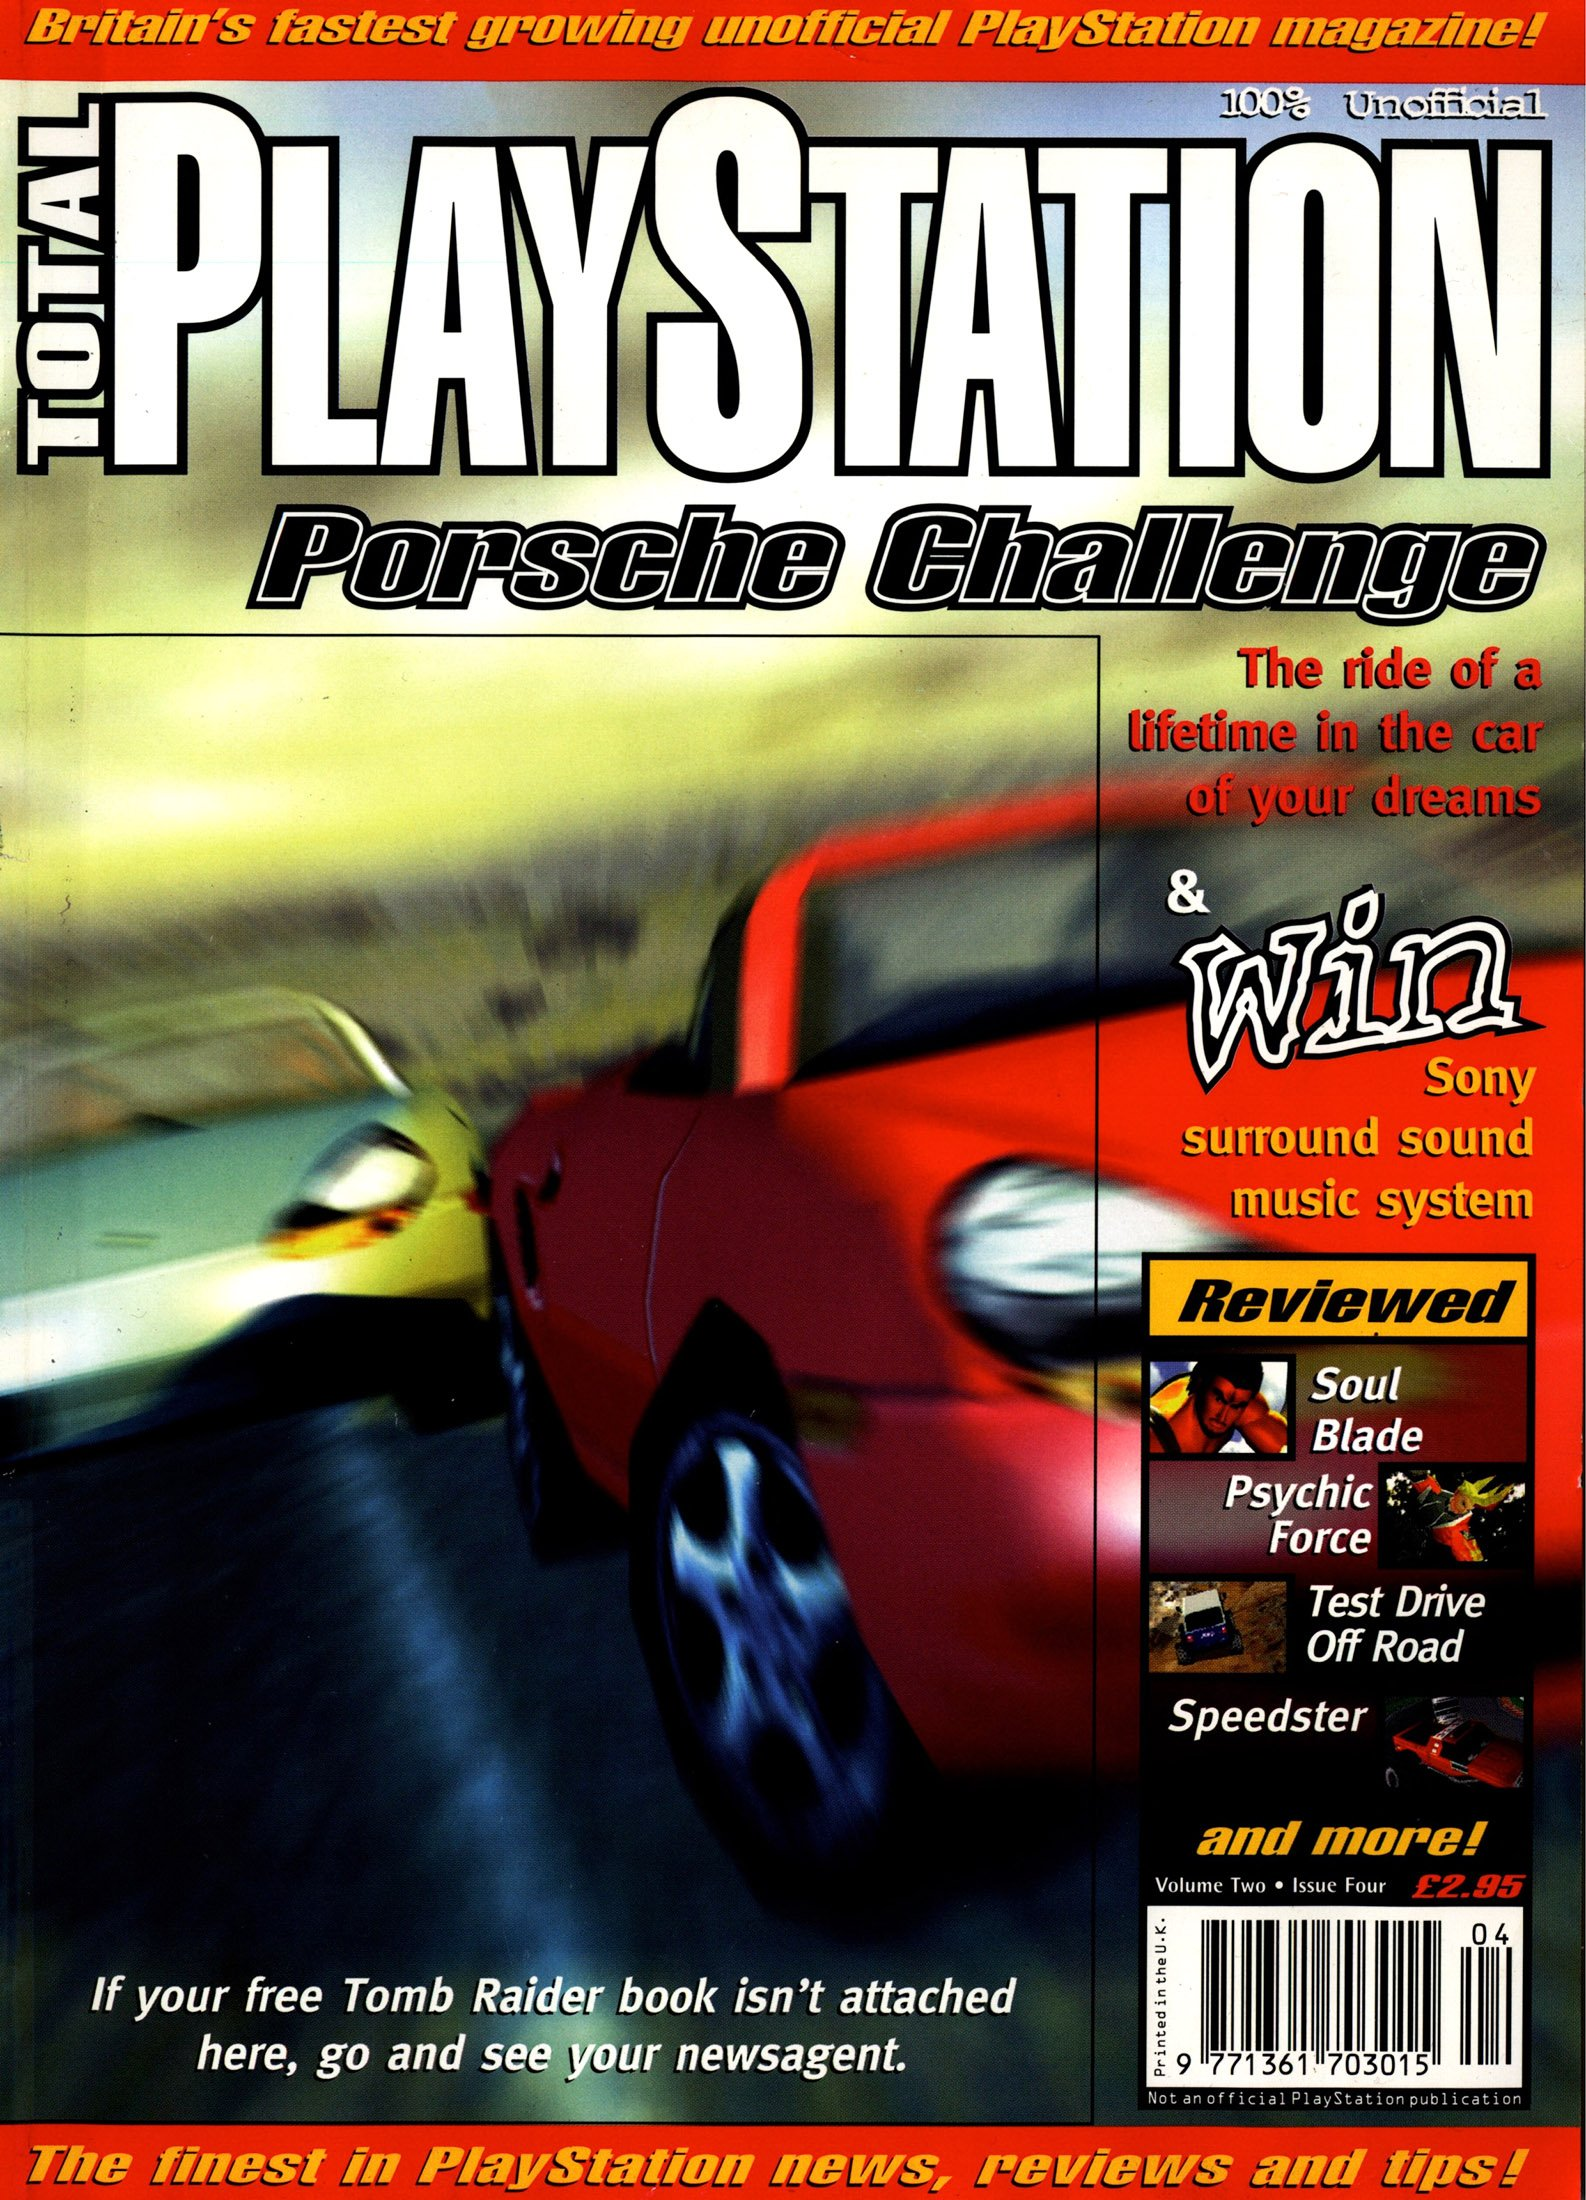 Total PlayStation Issue 15 (April 1997)